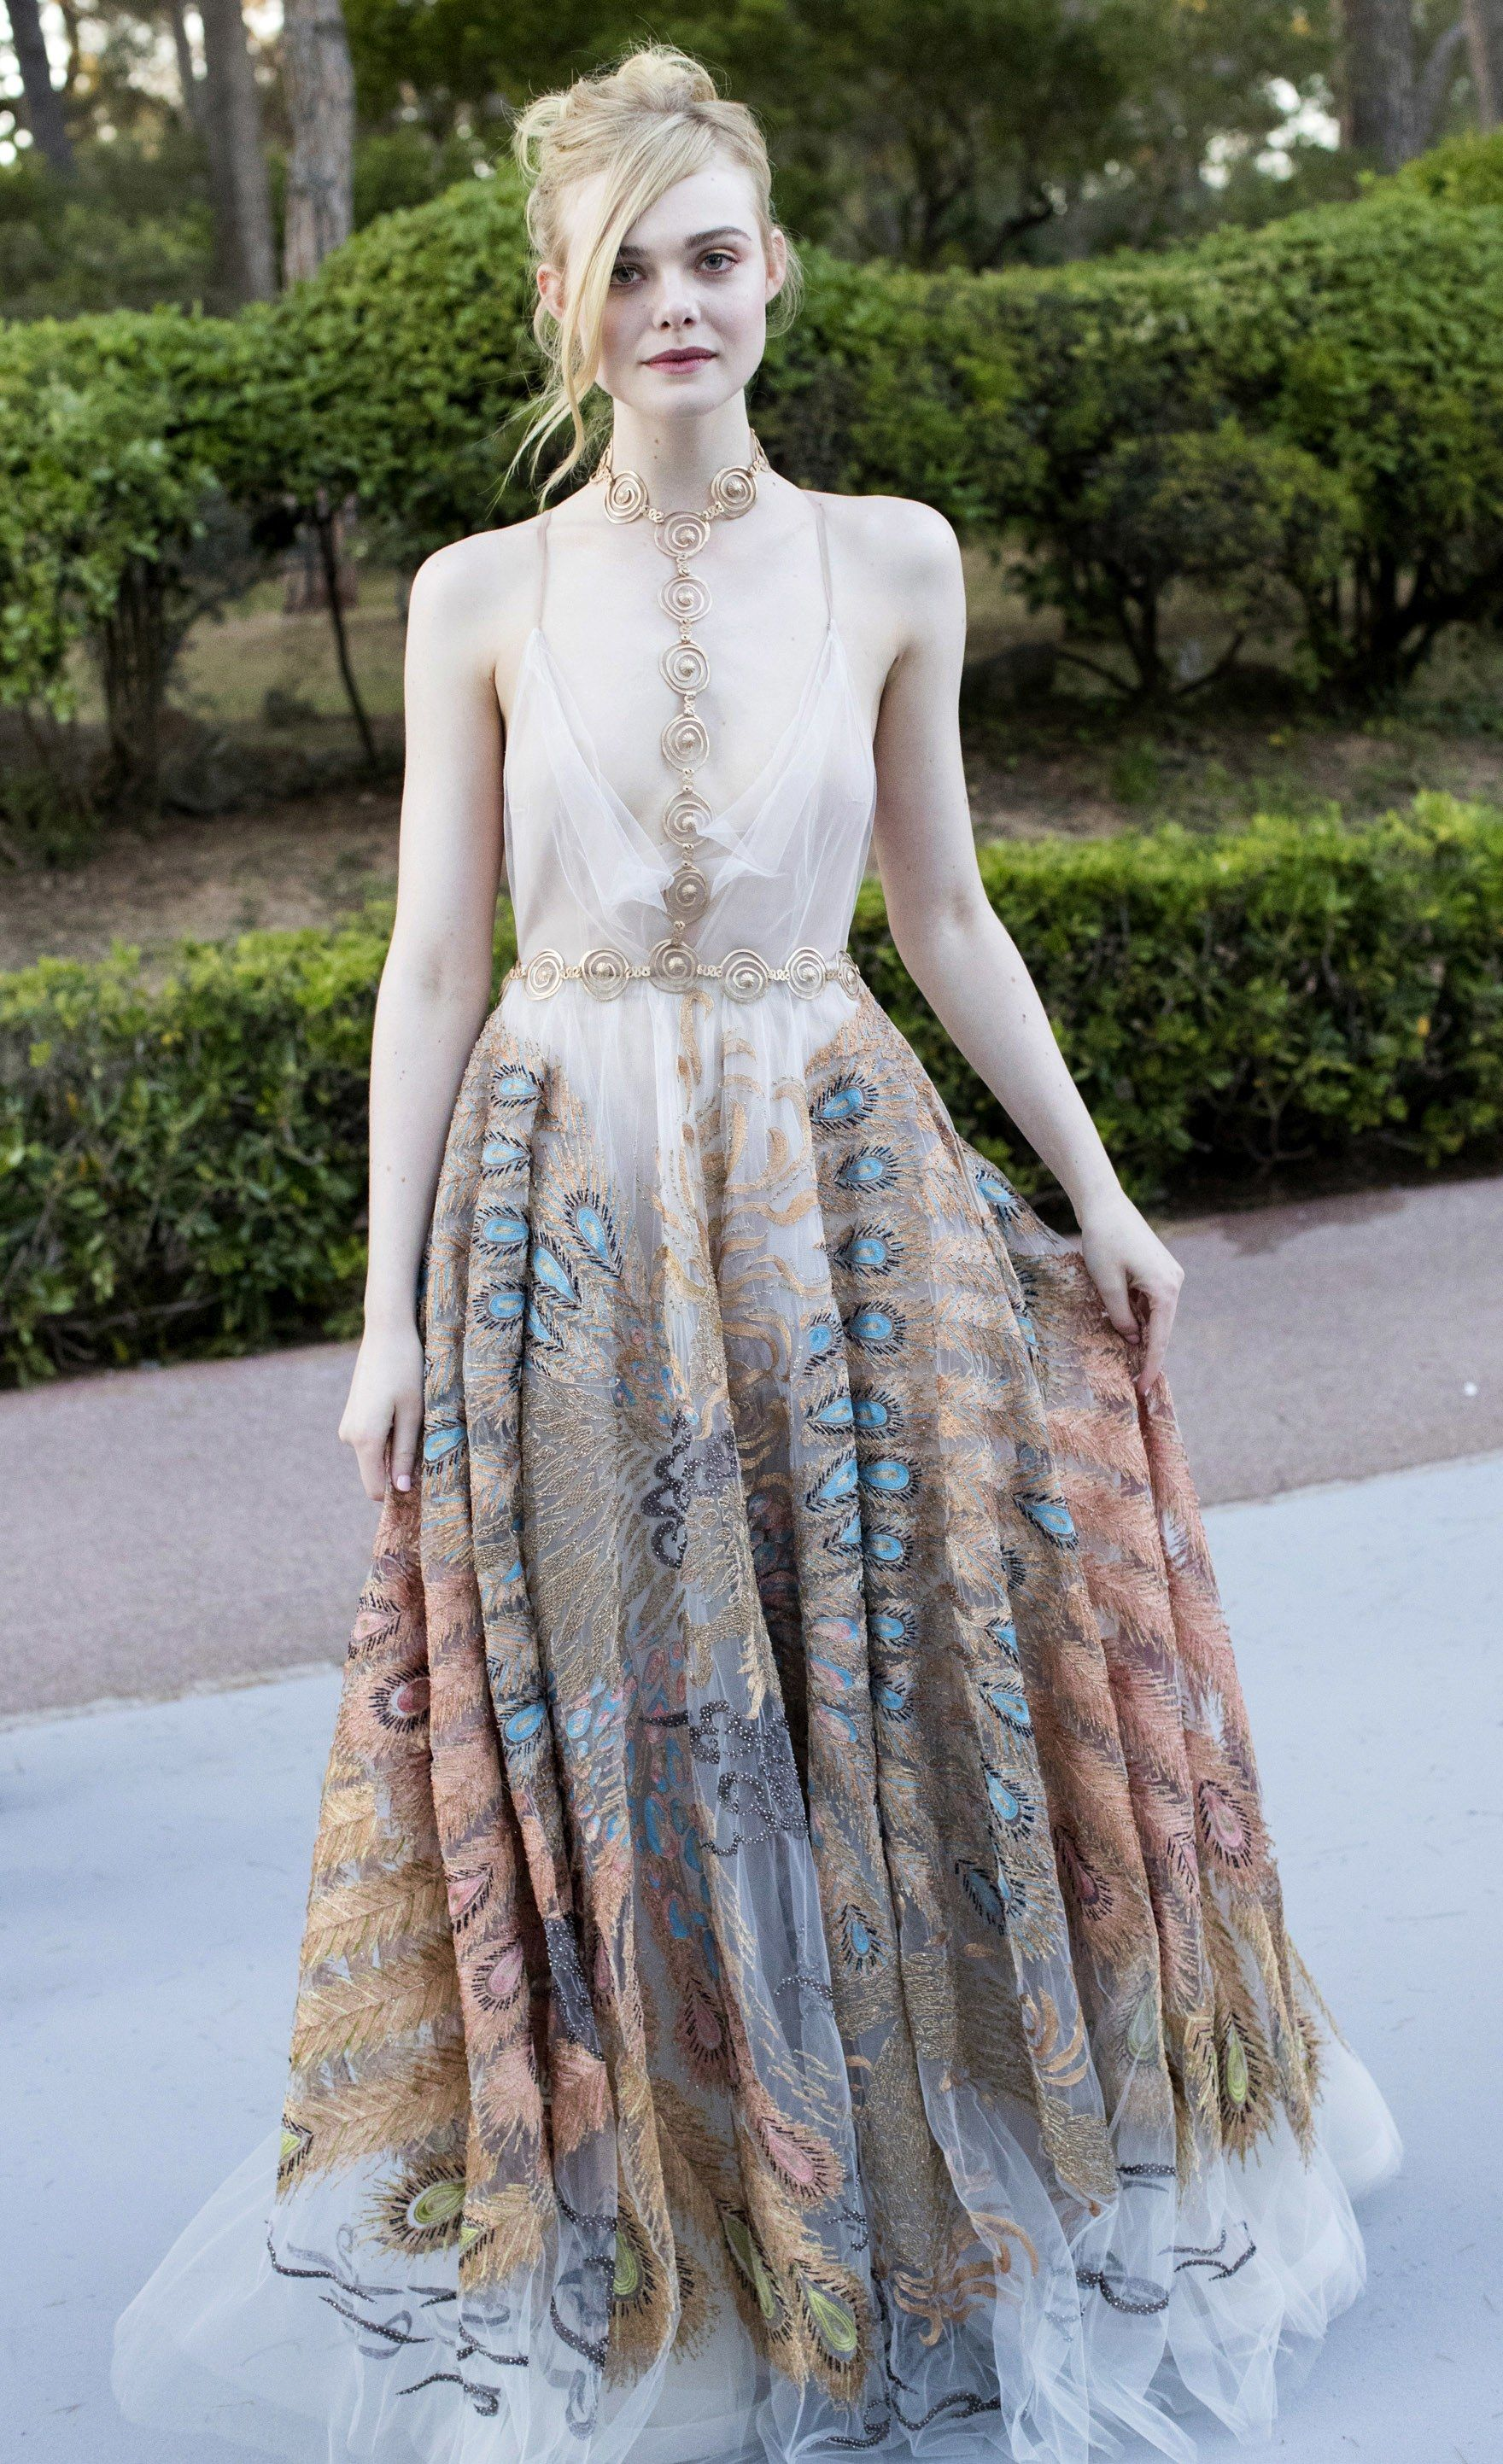 Over the past few months, Fanning has developed her own style aesthetic — this Valentino Couture gown is ethereal, yet with quirky details like a body chain. It's a definite style statement from a girl who's making her name working with Nicolas Winding Refn on a movie about models.